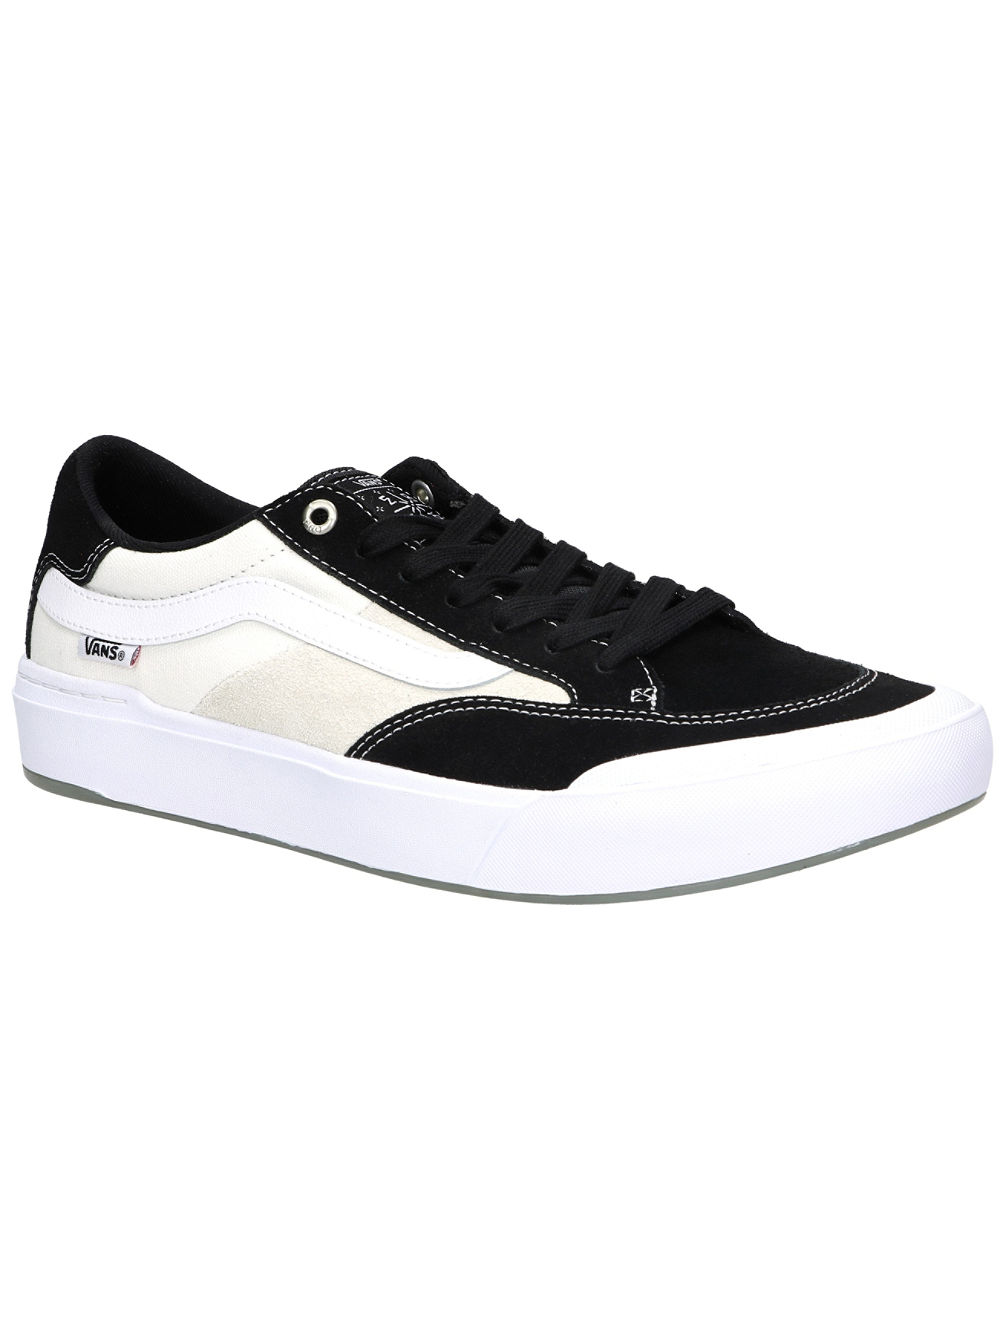 0b9a80b7dbe Buy Vans Berle Pro Skate Shoes online at blue-tomato.com